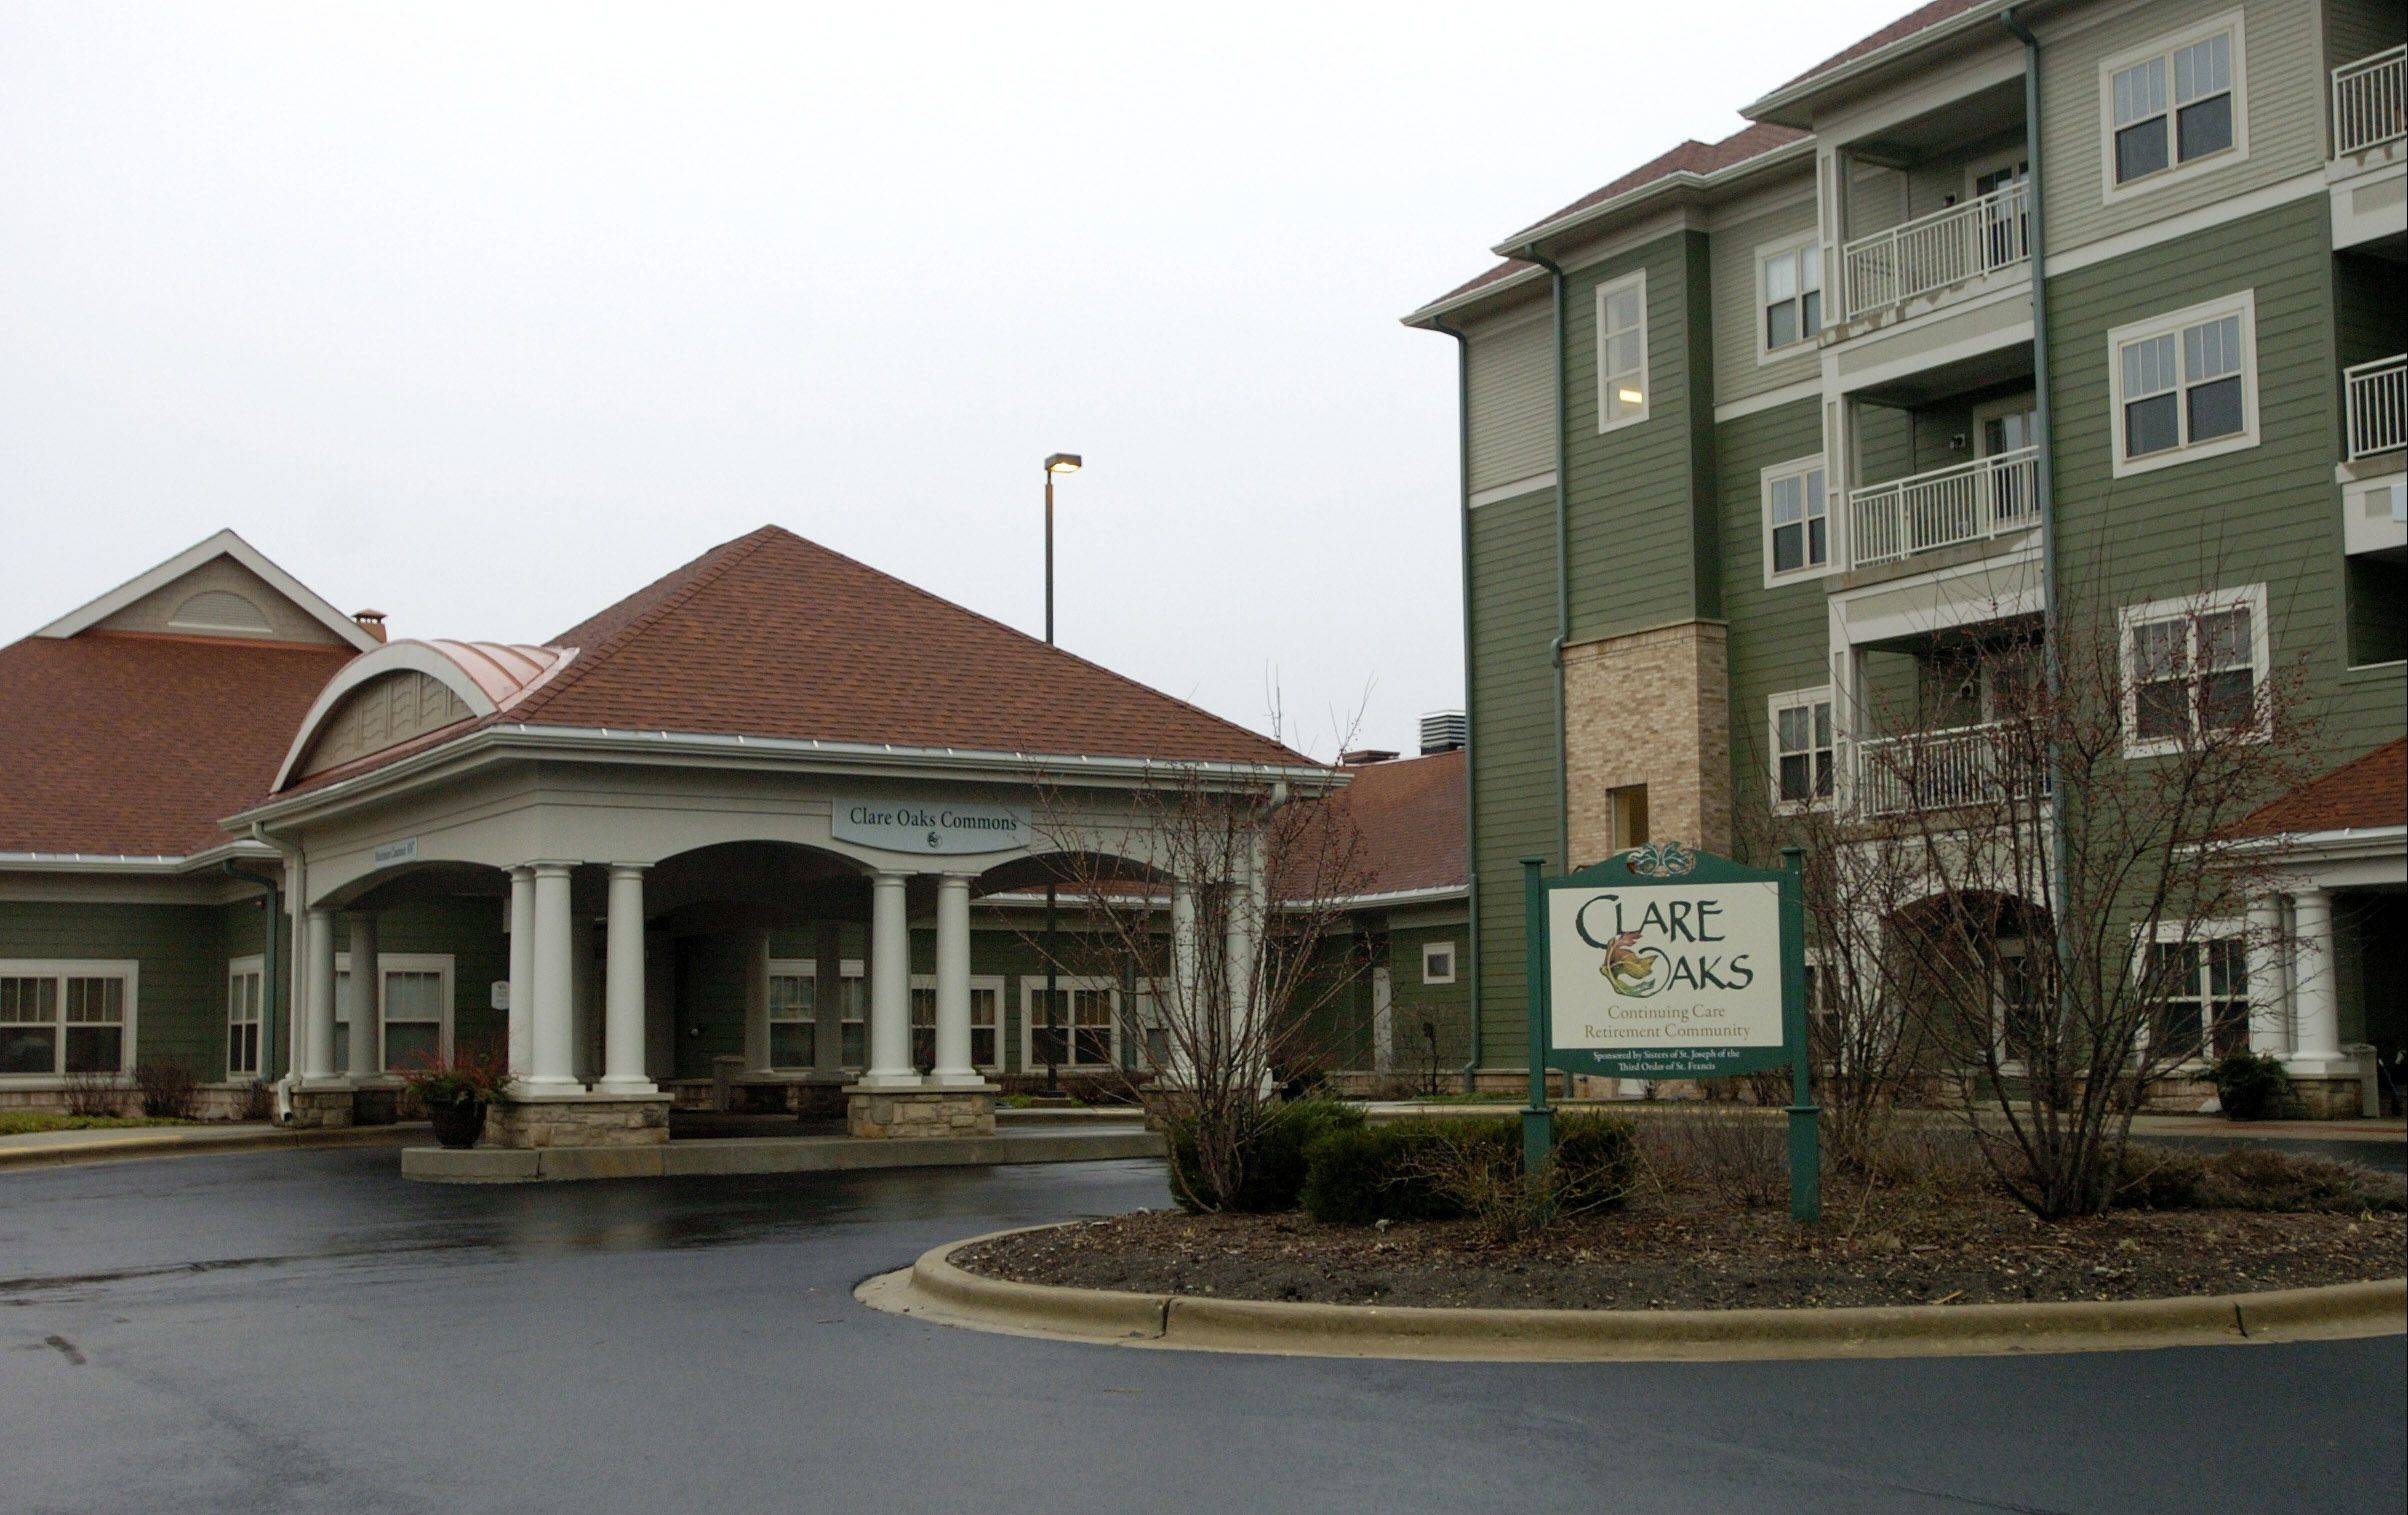 The Clare Oaks retirement community in Bartlett, founded by an order of nuns, is back on track after restructuring its debt in a bankruptcy proceeding.